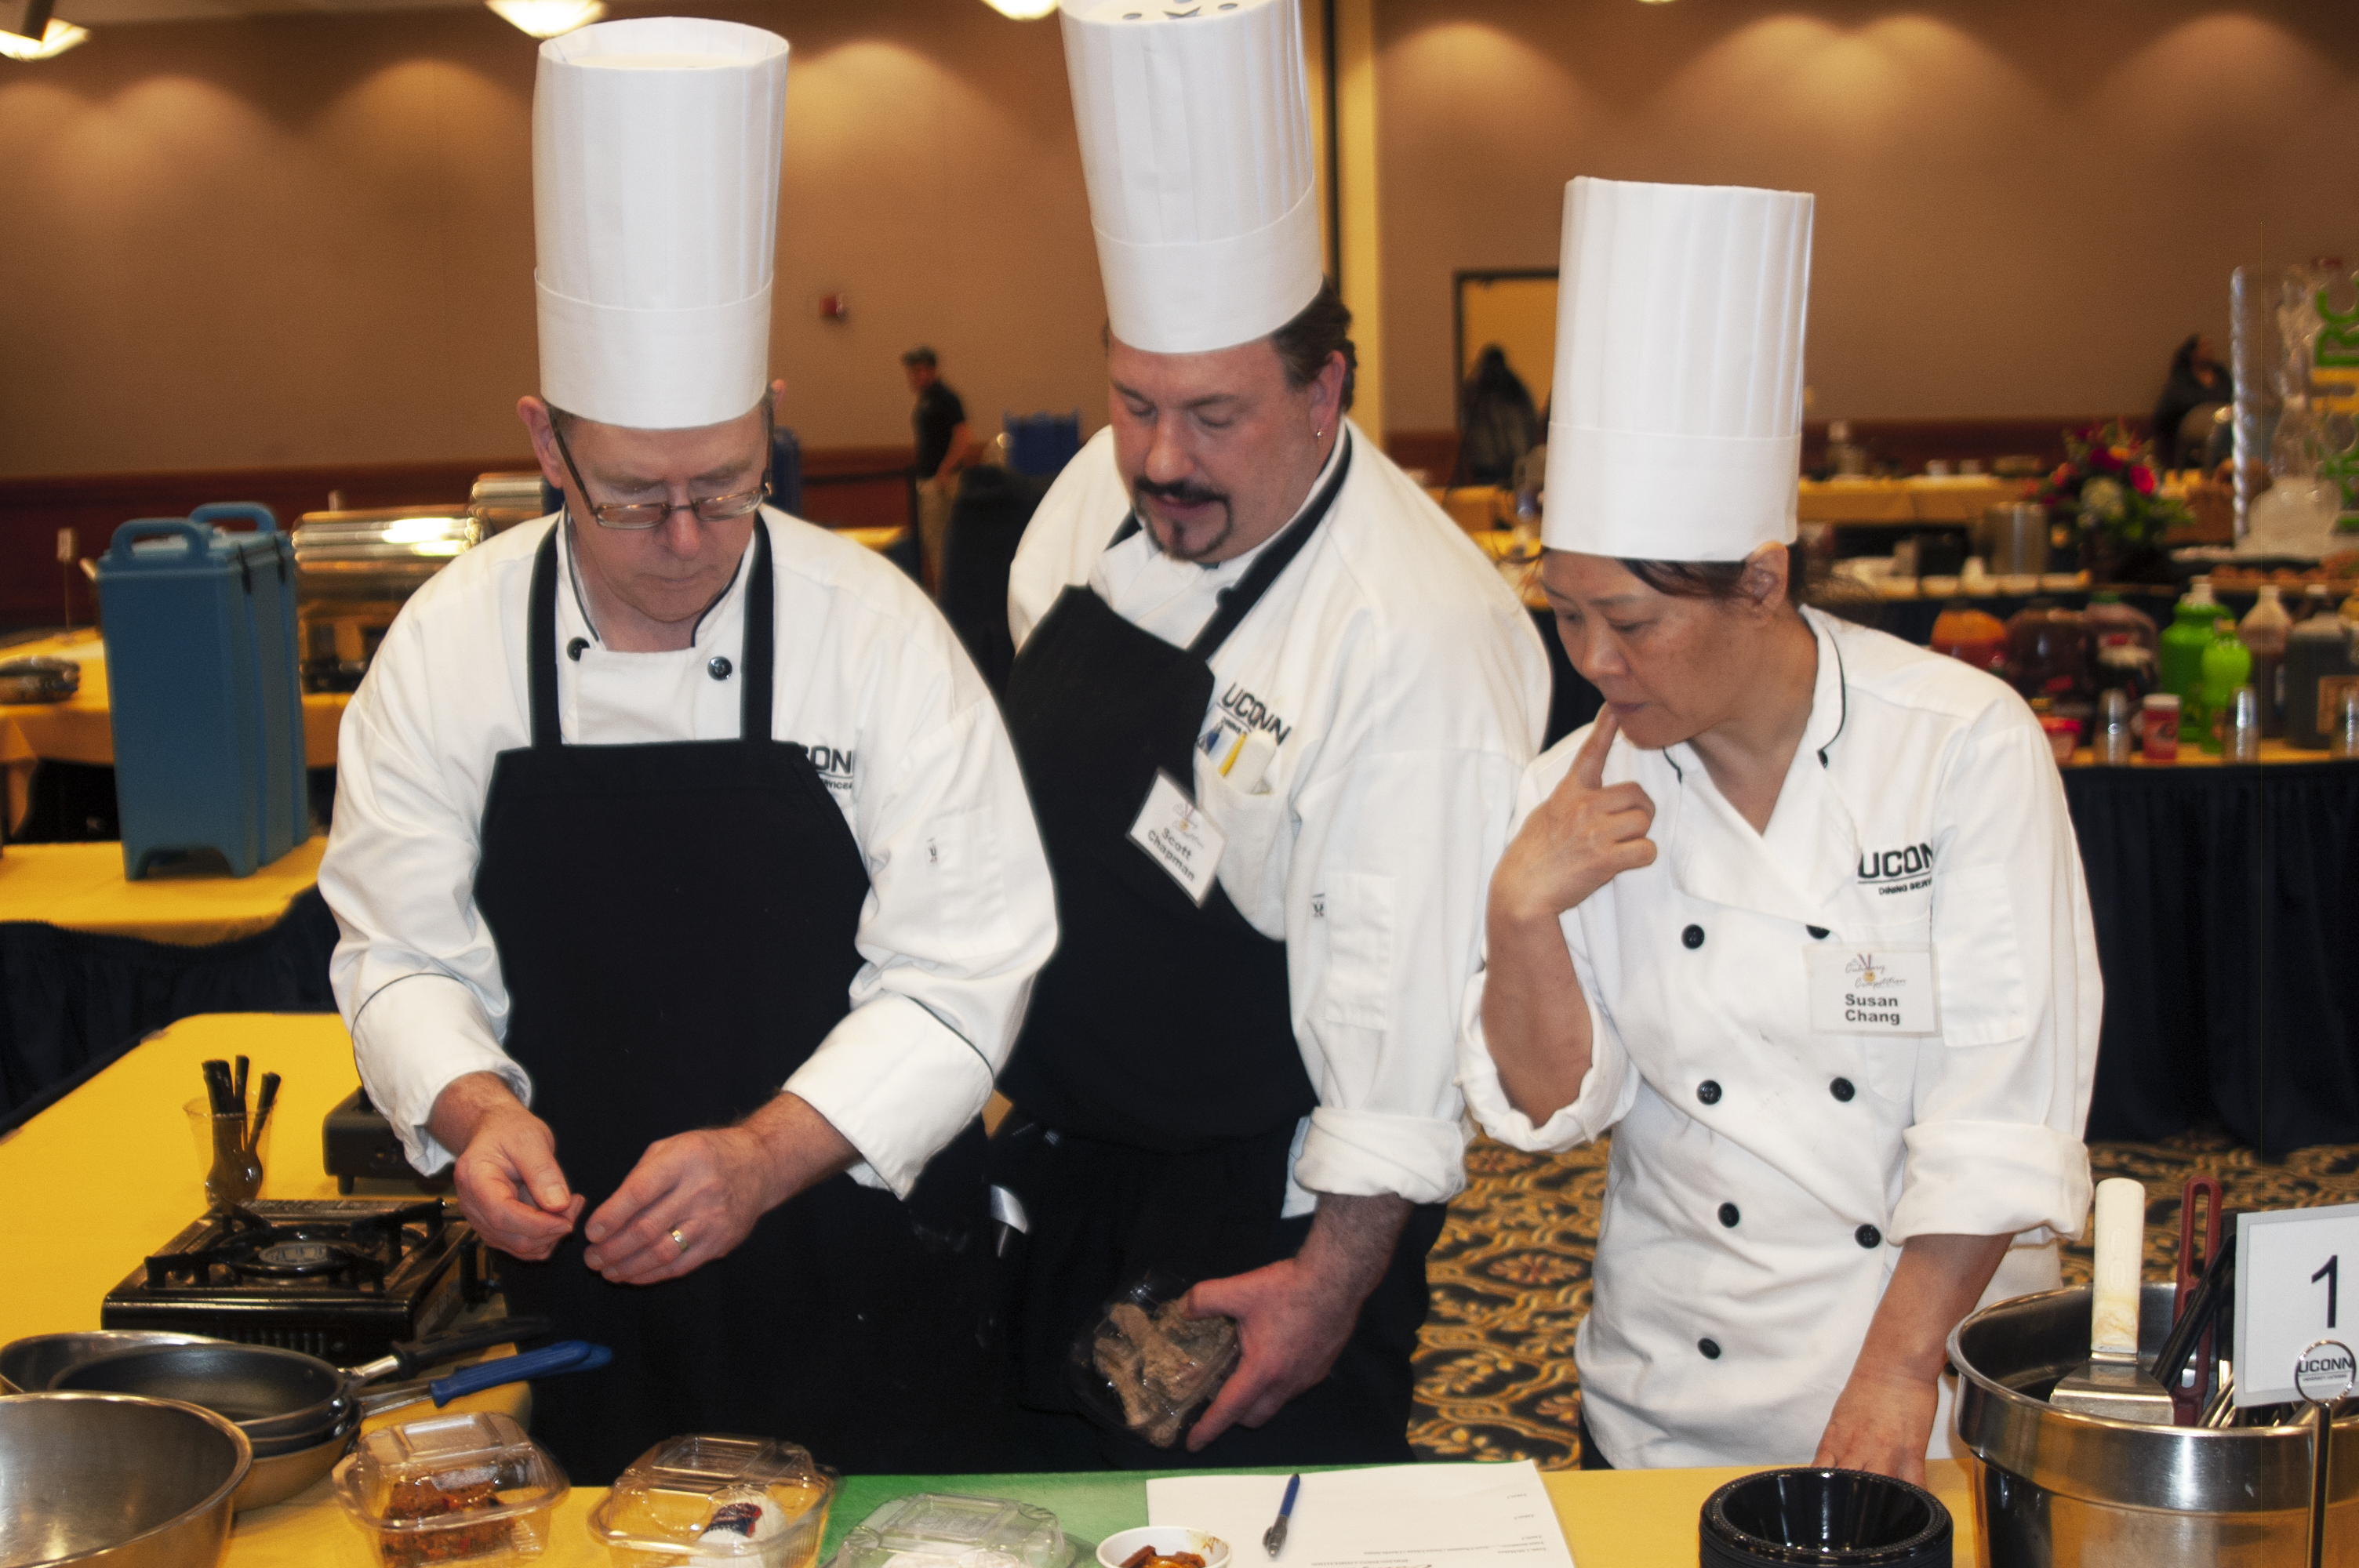 Chefs workign in a culinary competition